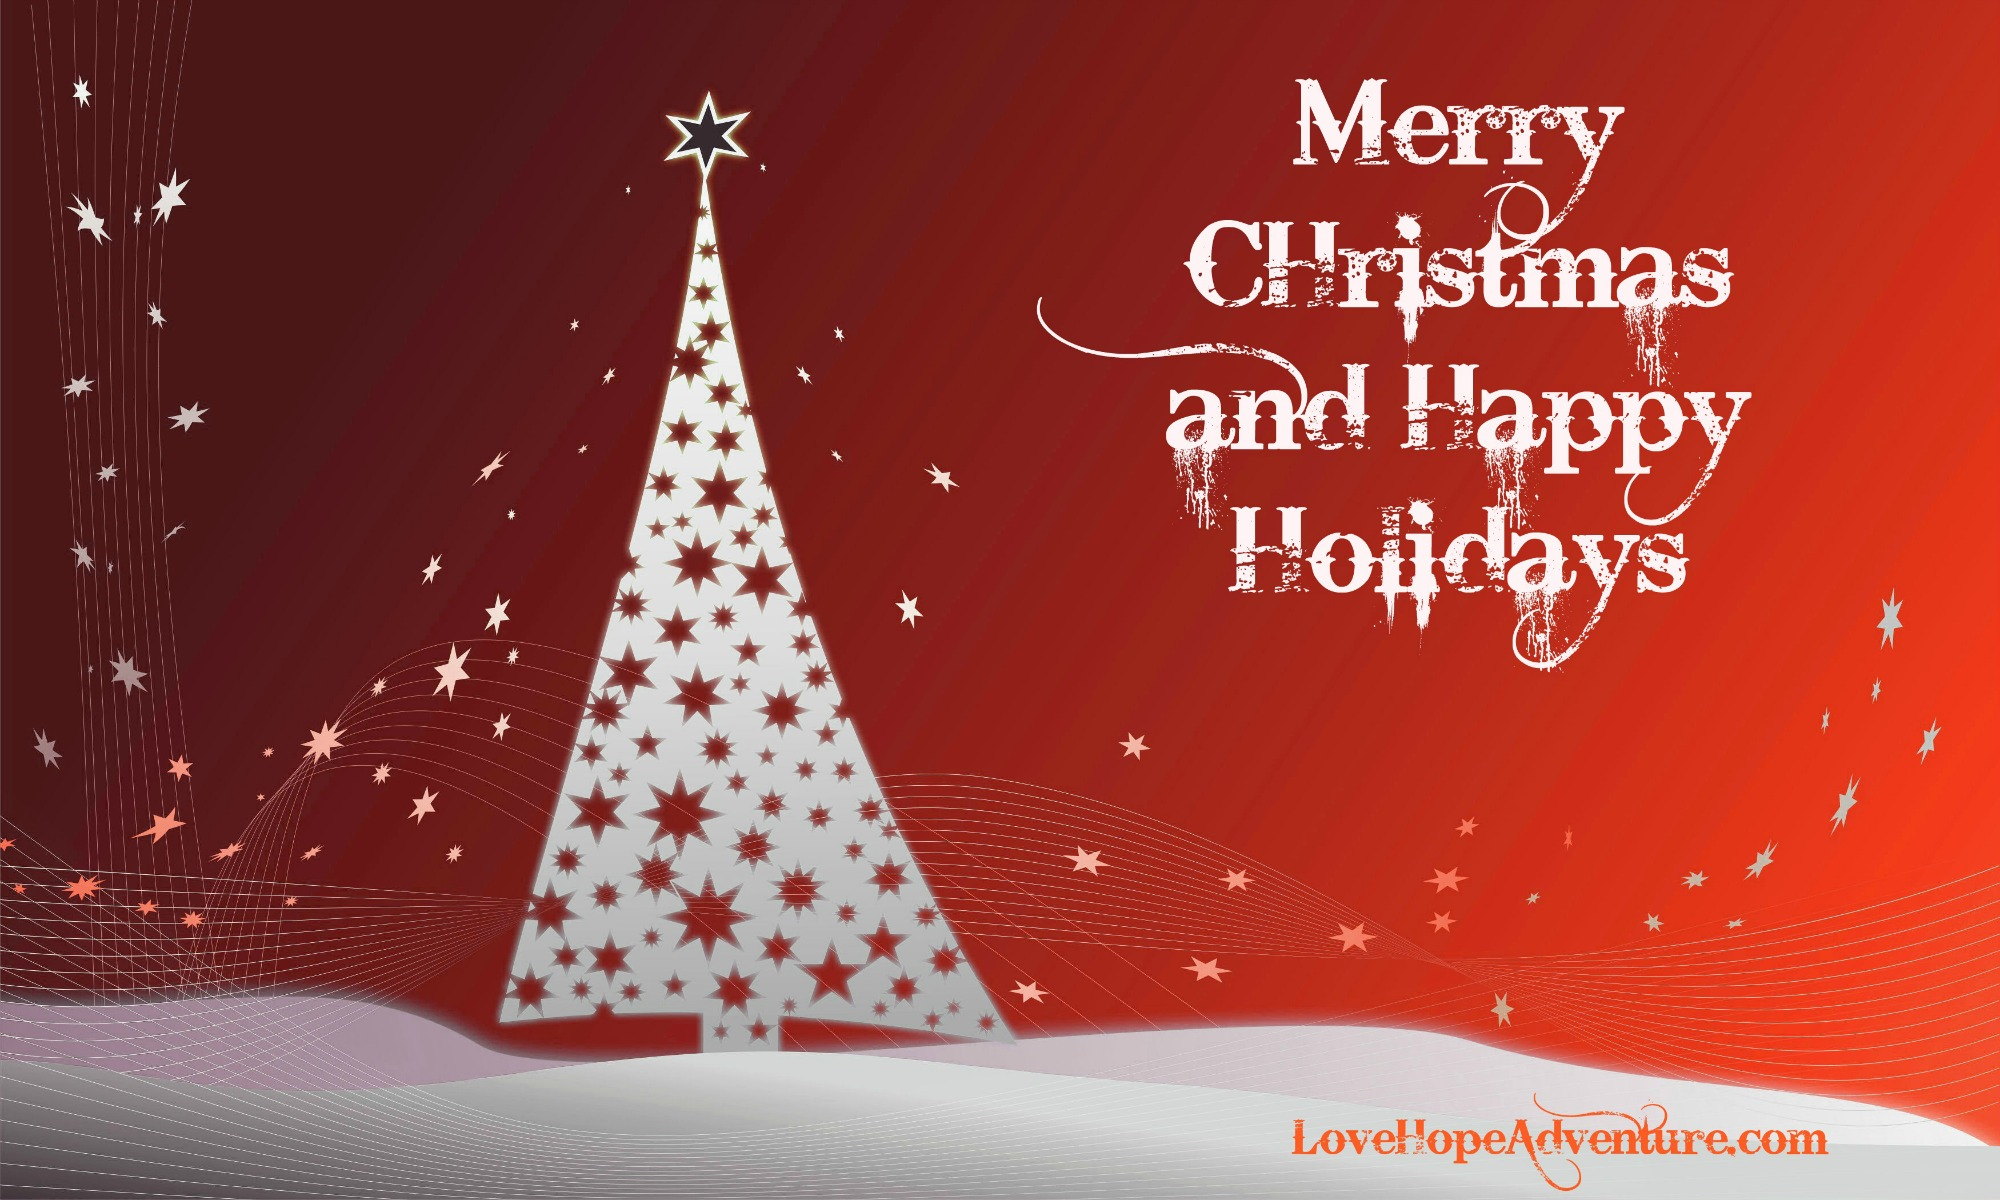 merry christmas to you and your family in tagalog